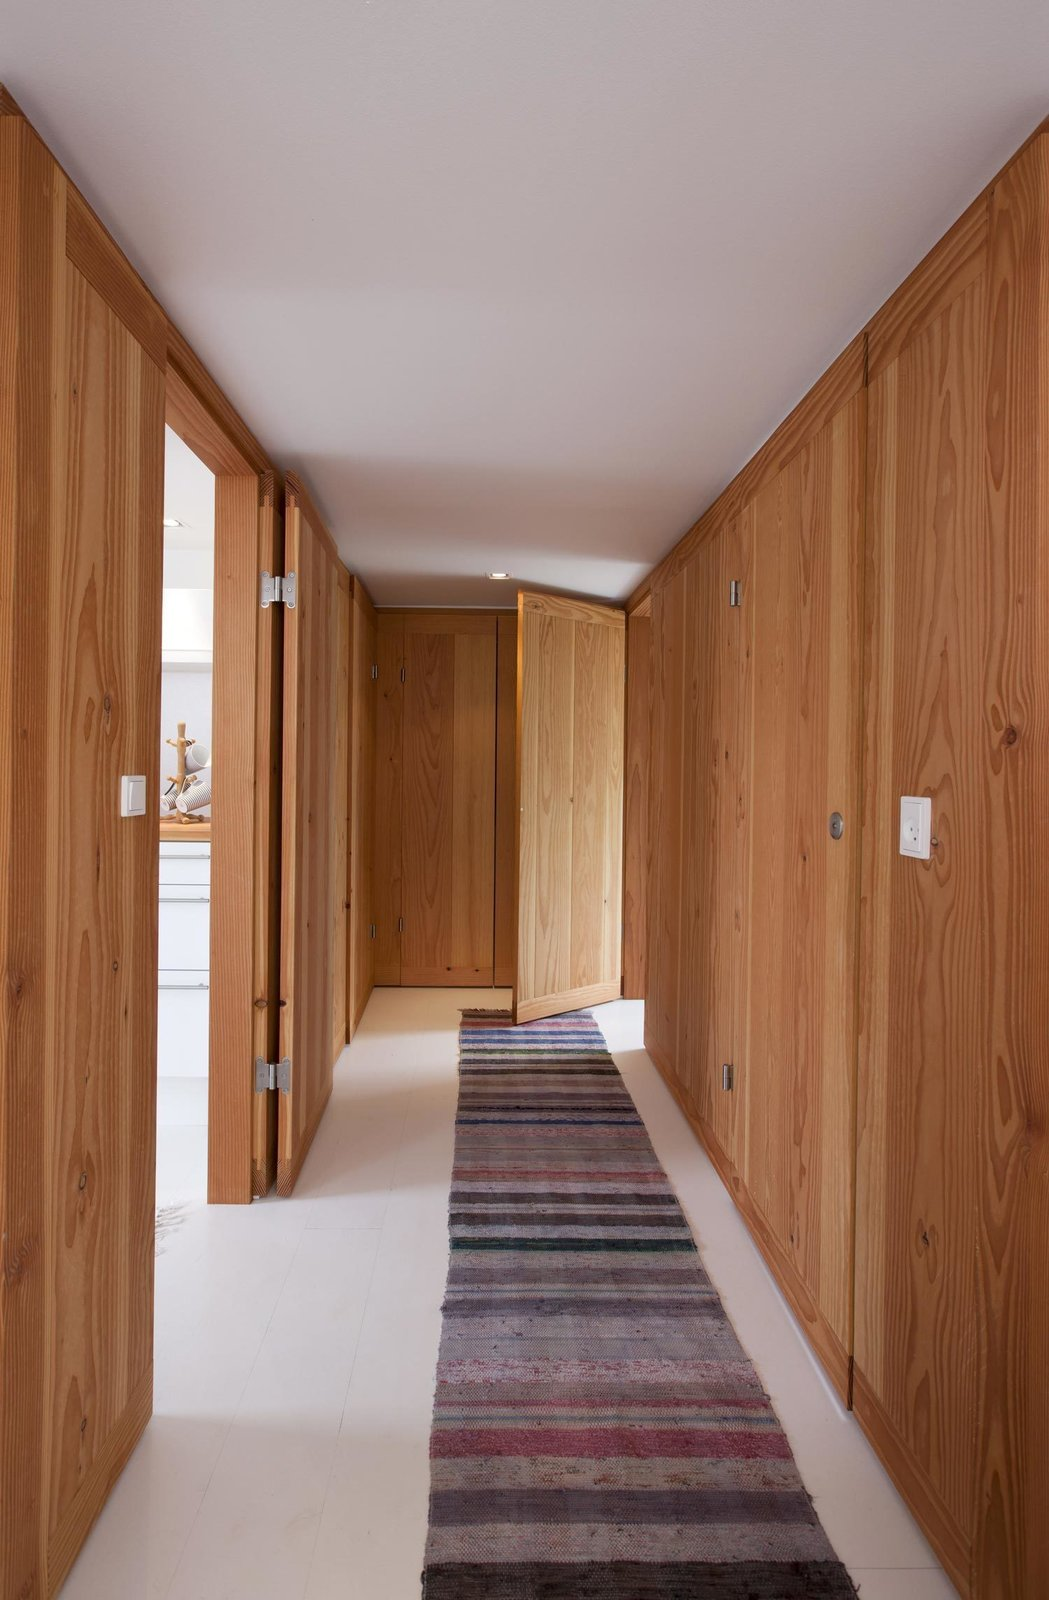 Douglas fir lines the walls of the entryway. A narrow striped rug adds texture to the white-painted wooden floor from Dinesen. Tagged: Hallway.  Hallways That Impress by Ethan Lance from A Thatched Cottage in Denmark with a Modern, Space-Saving Interior